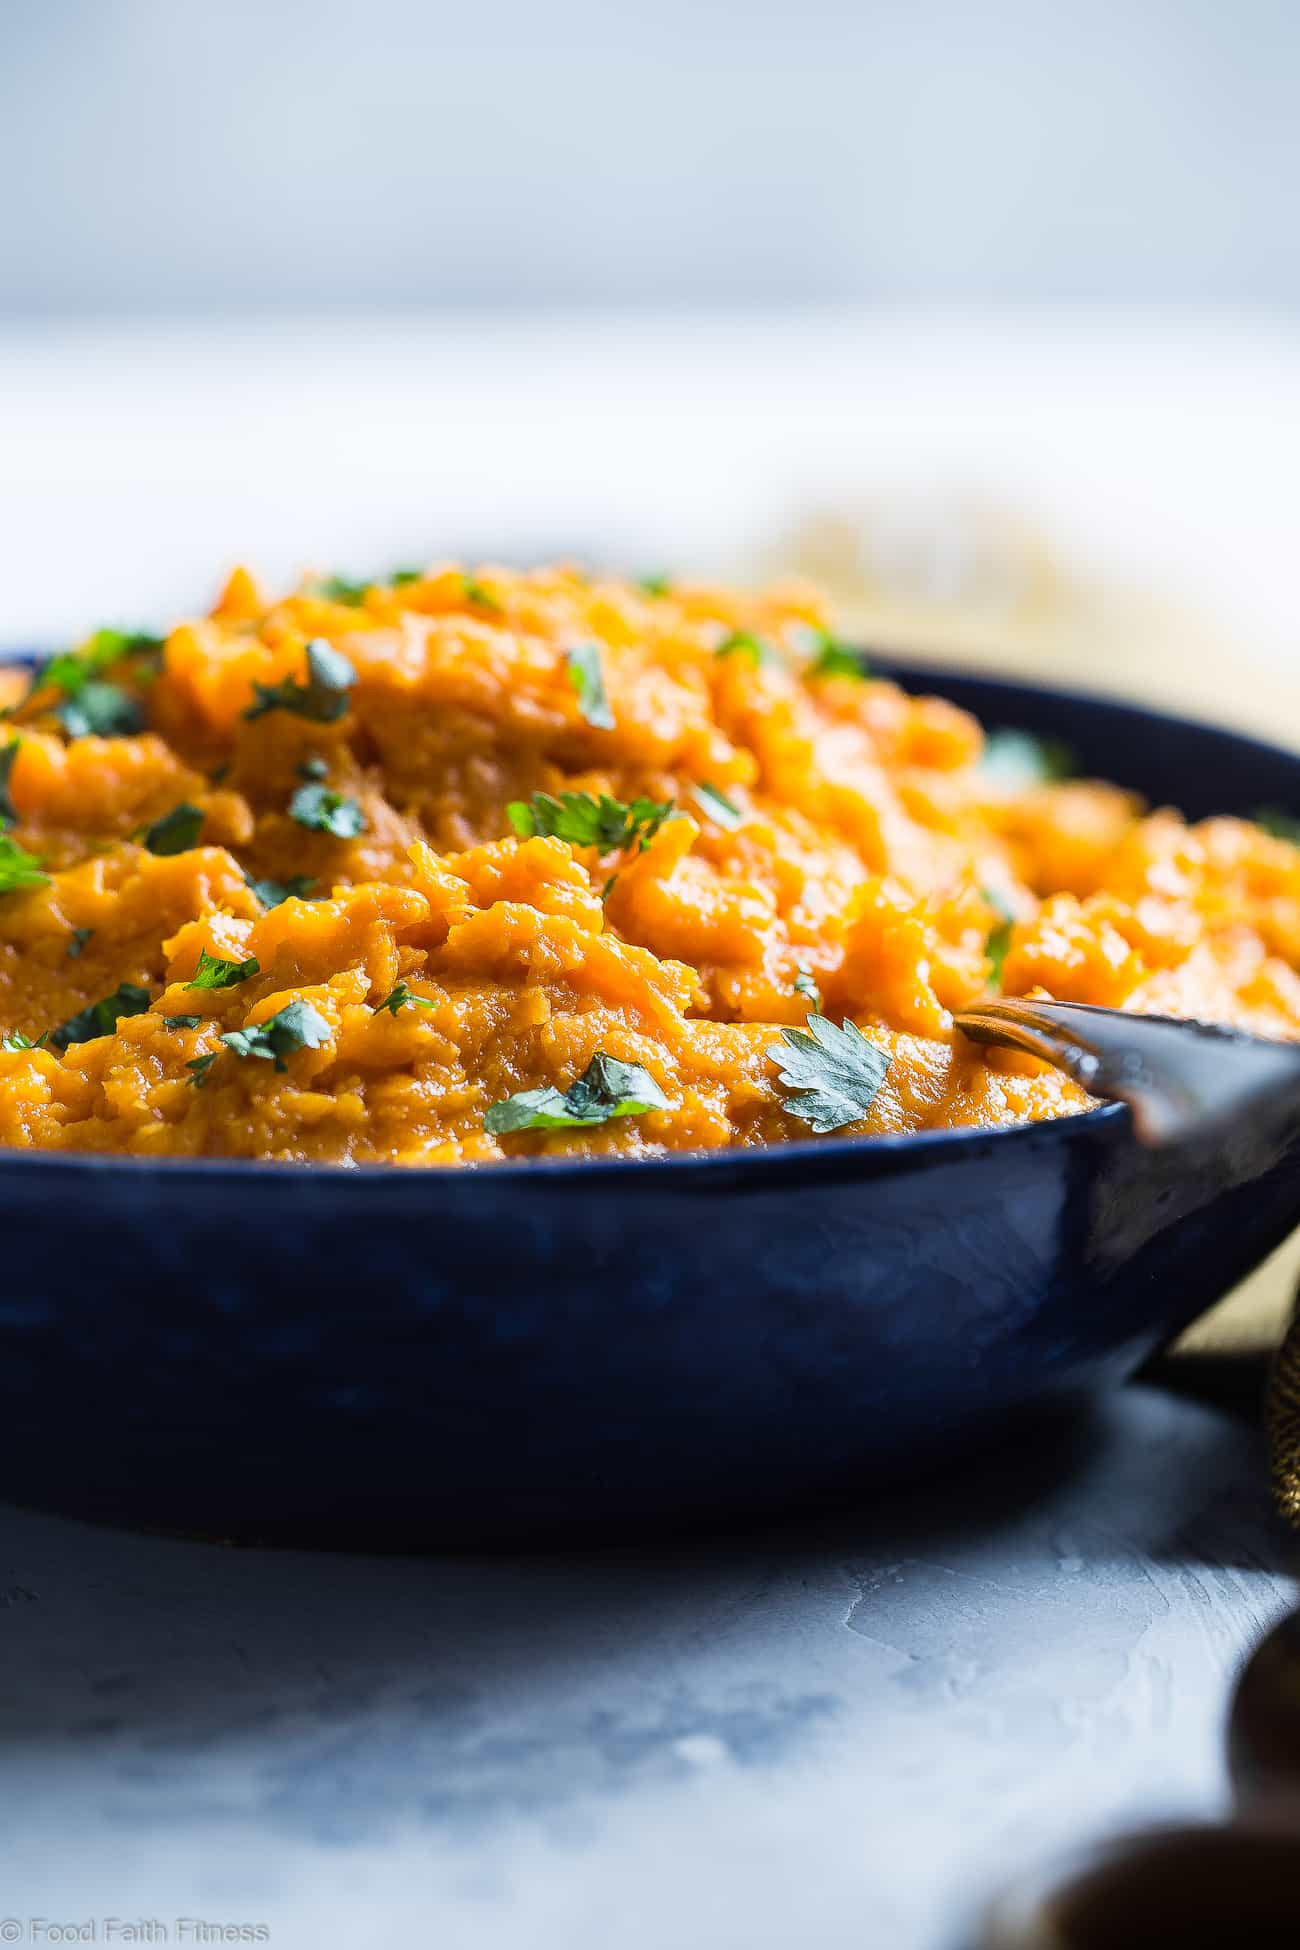 Coconut Curry Mashed Sweet Potatoes - A sweet and spicy spin on a holiday classic!  So creamy you will never believe they are dairy, grain and gluten free and paleo/vegan/whole30 compliant! | Foodfaithfitness.com | @FoodFaithFit